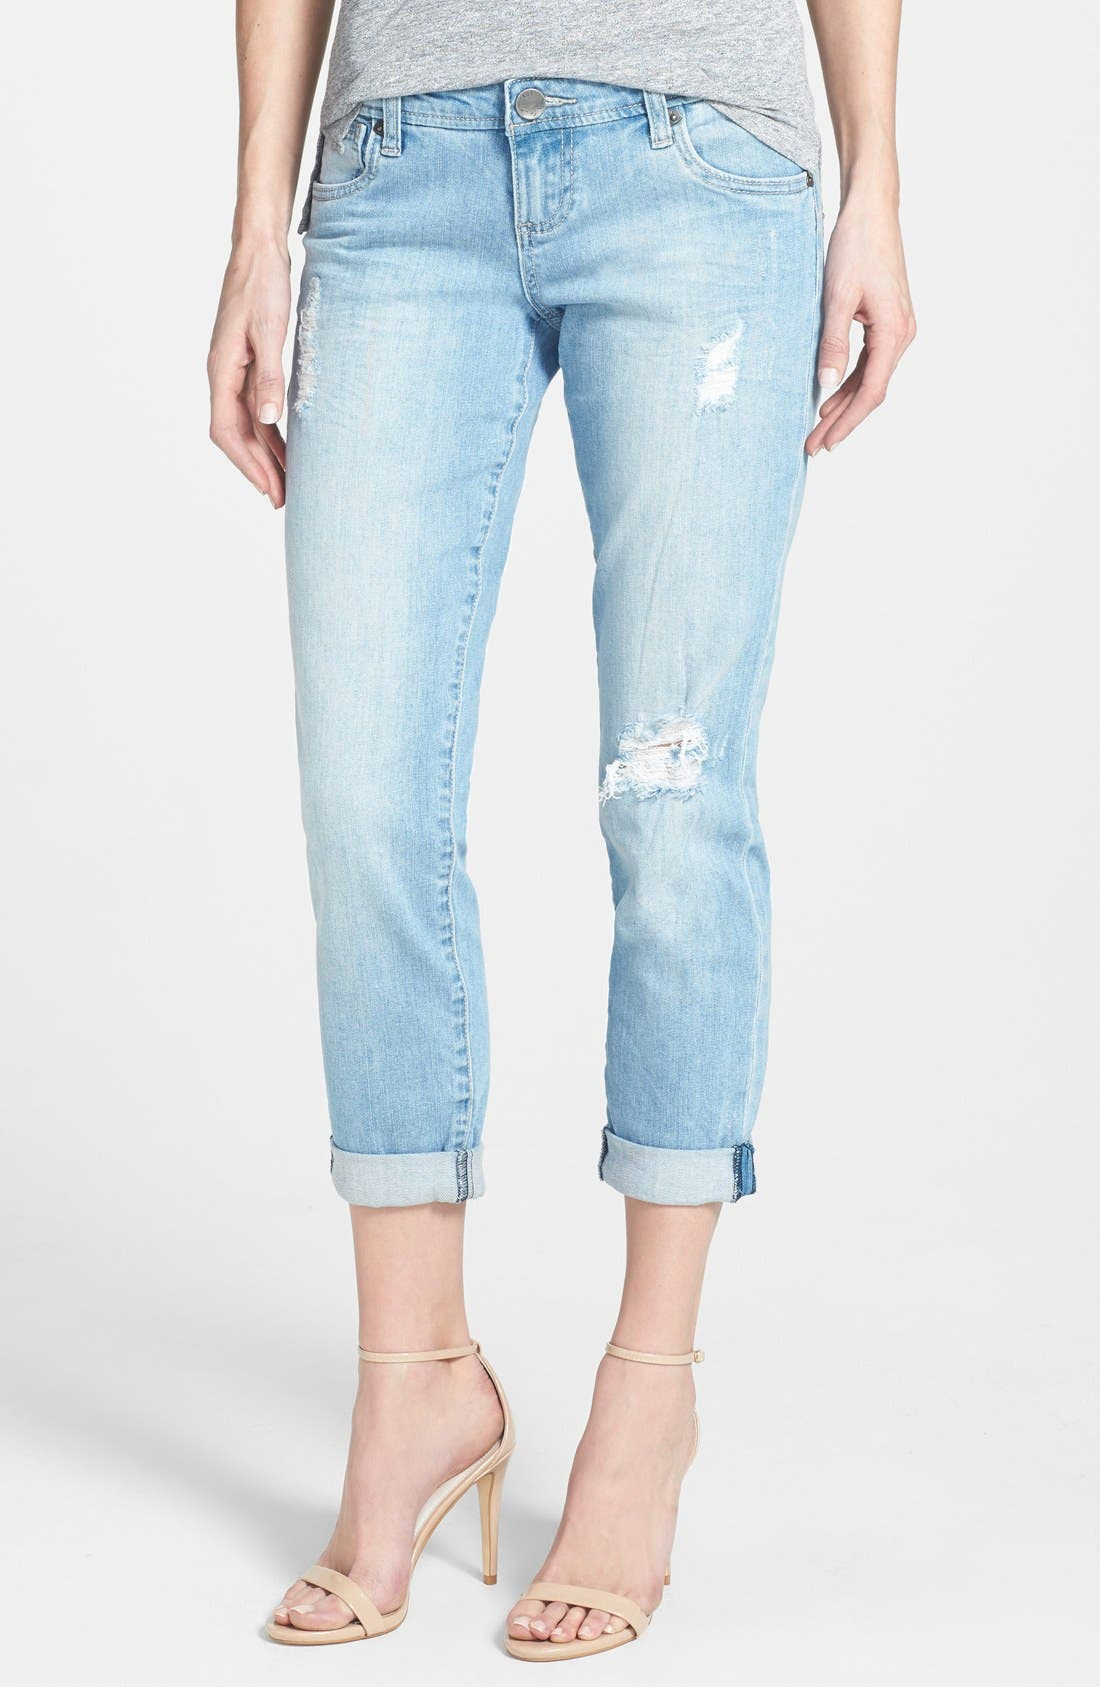 Alternate Image 1 Selected - KUT from the Kloth 'Adele' Distressed Crop Boyfriend Jeans (Slick)